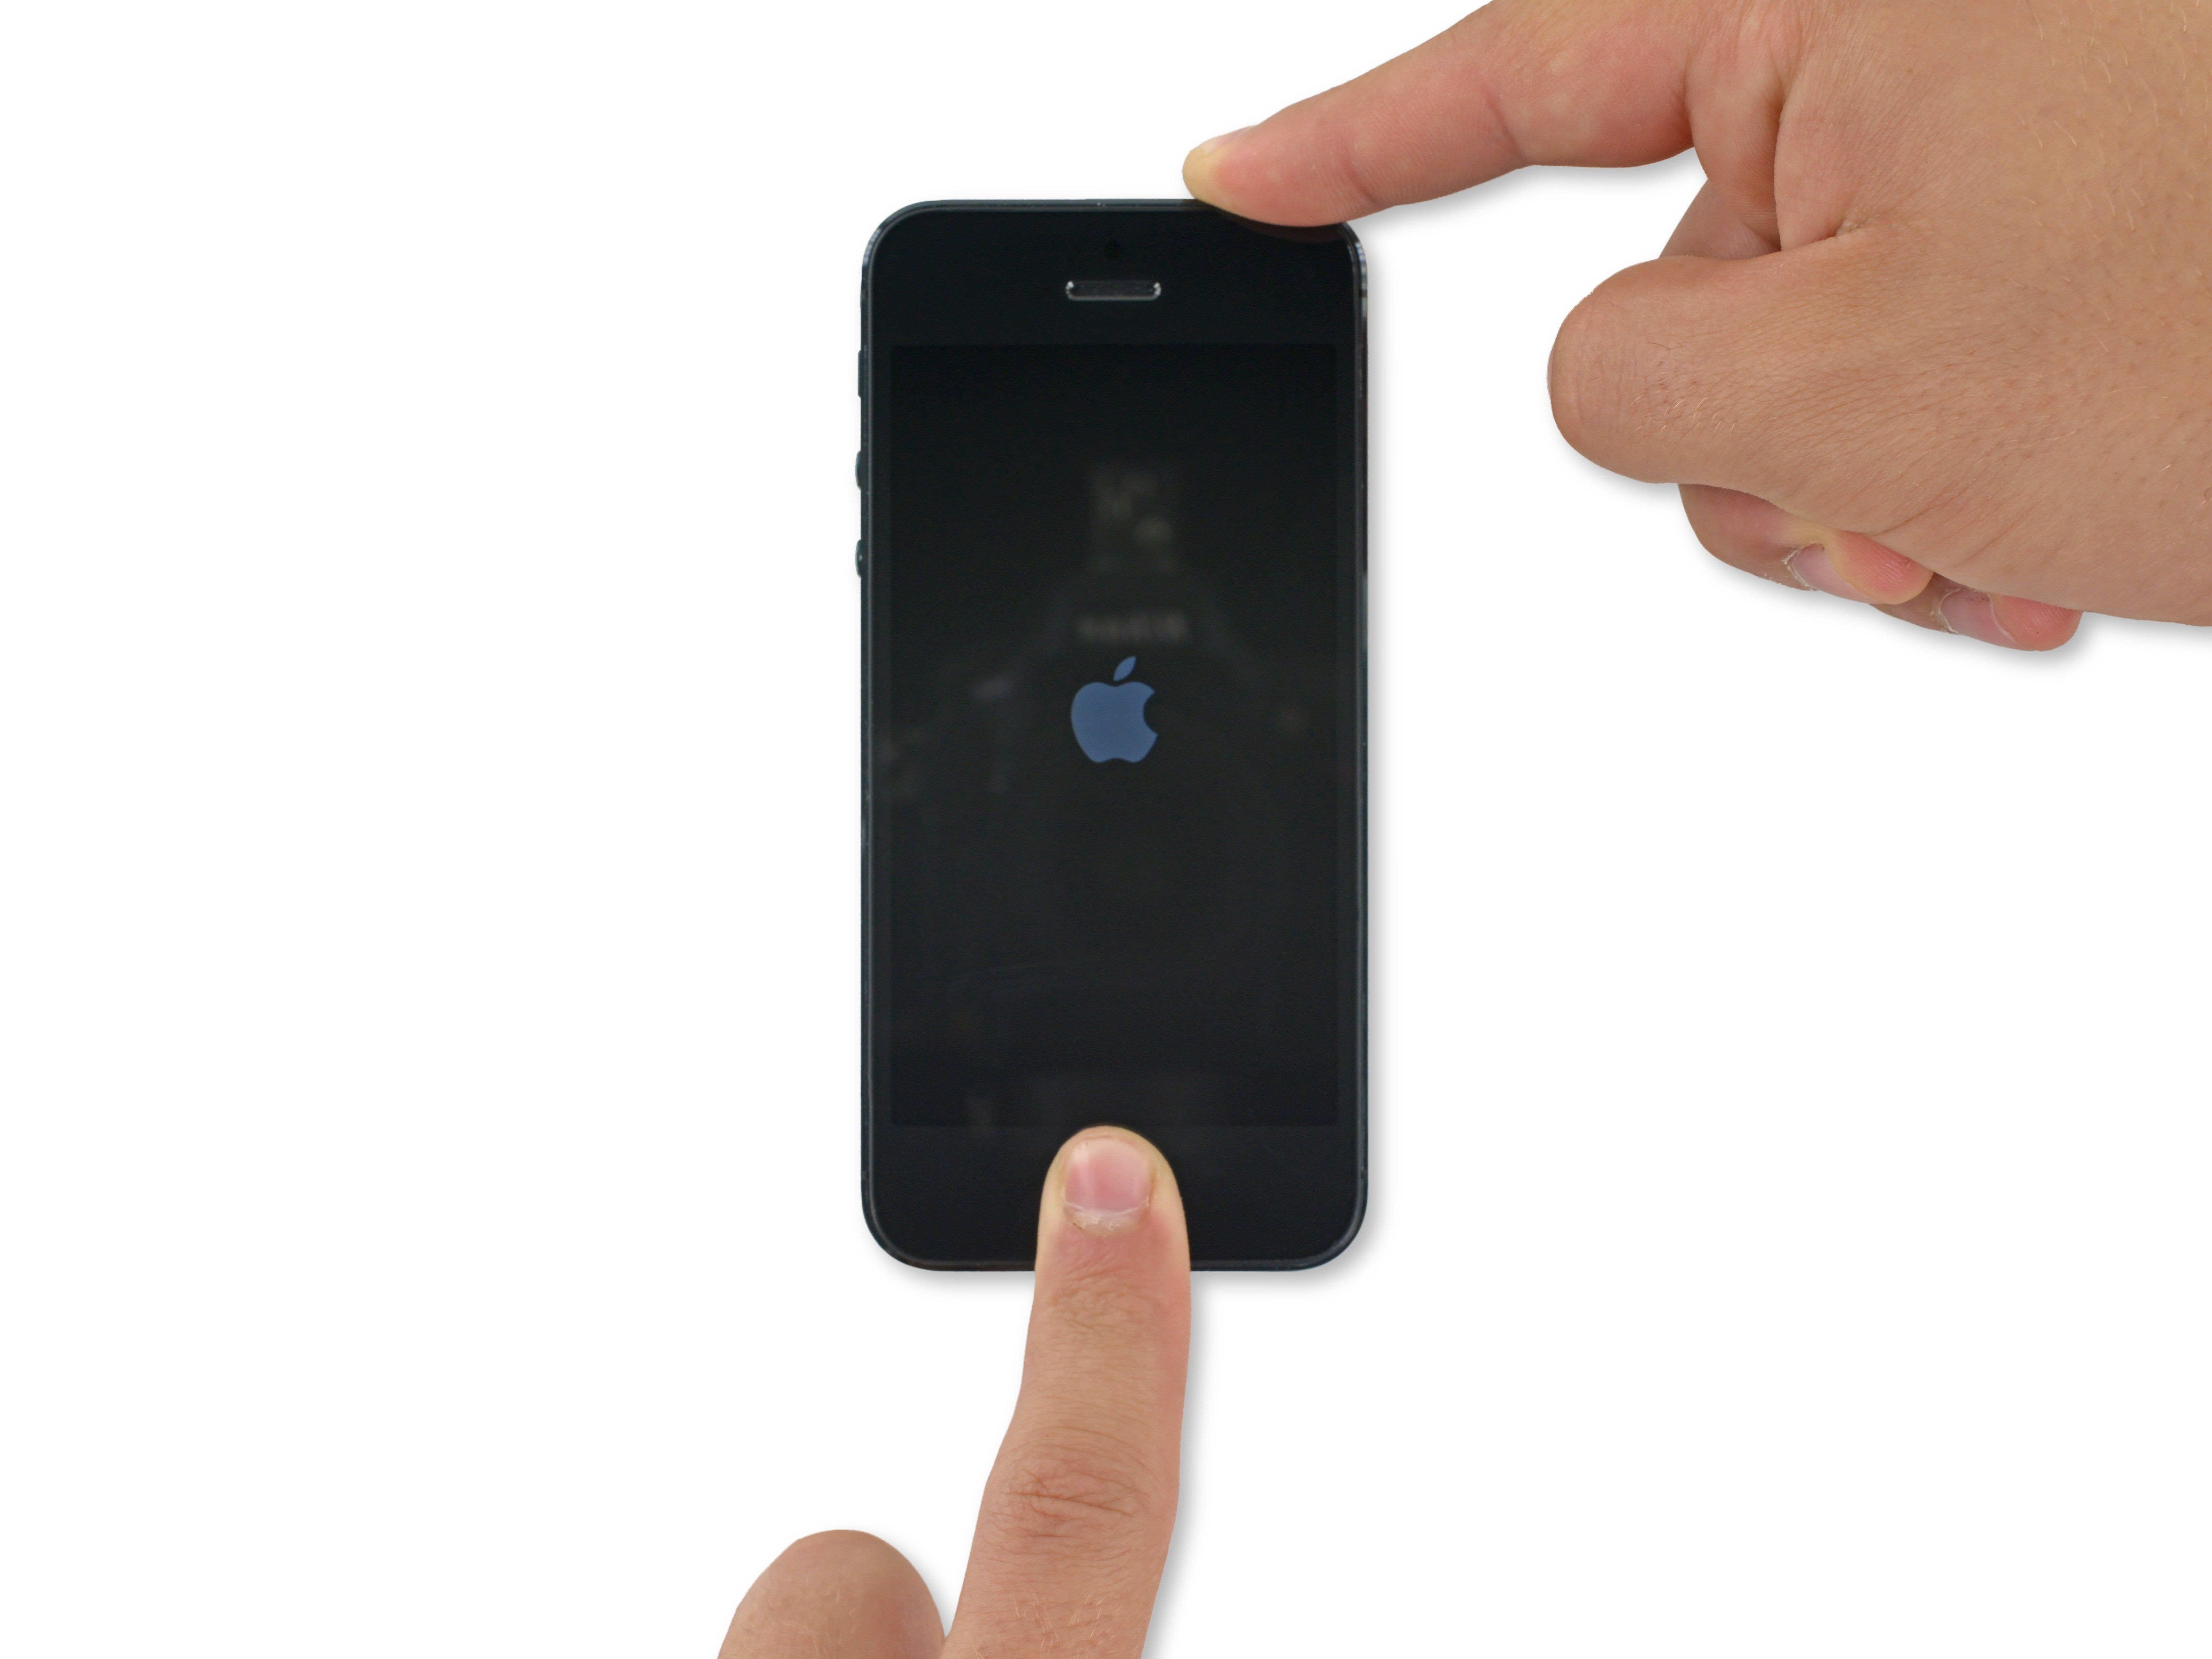 How to Force Restart an iPhone 26 - iFixit Repair Guide